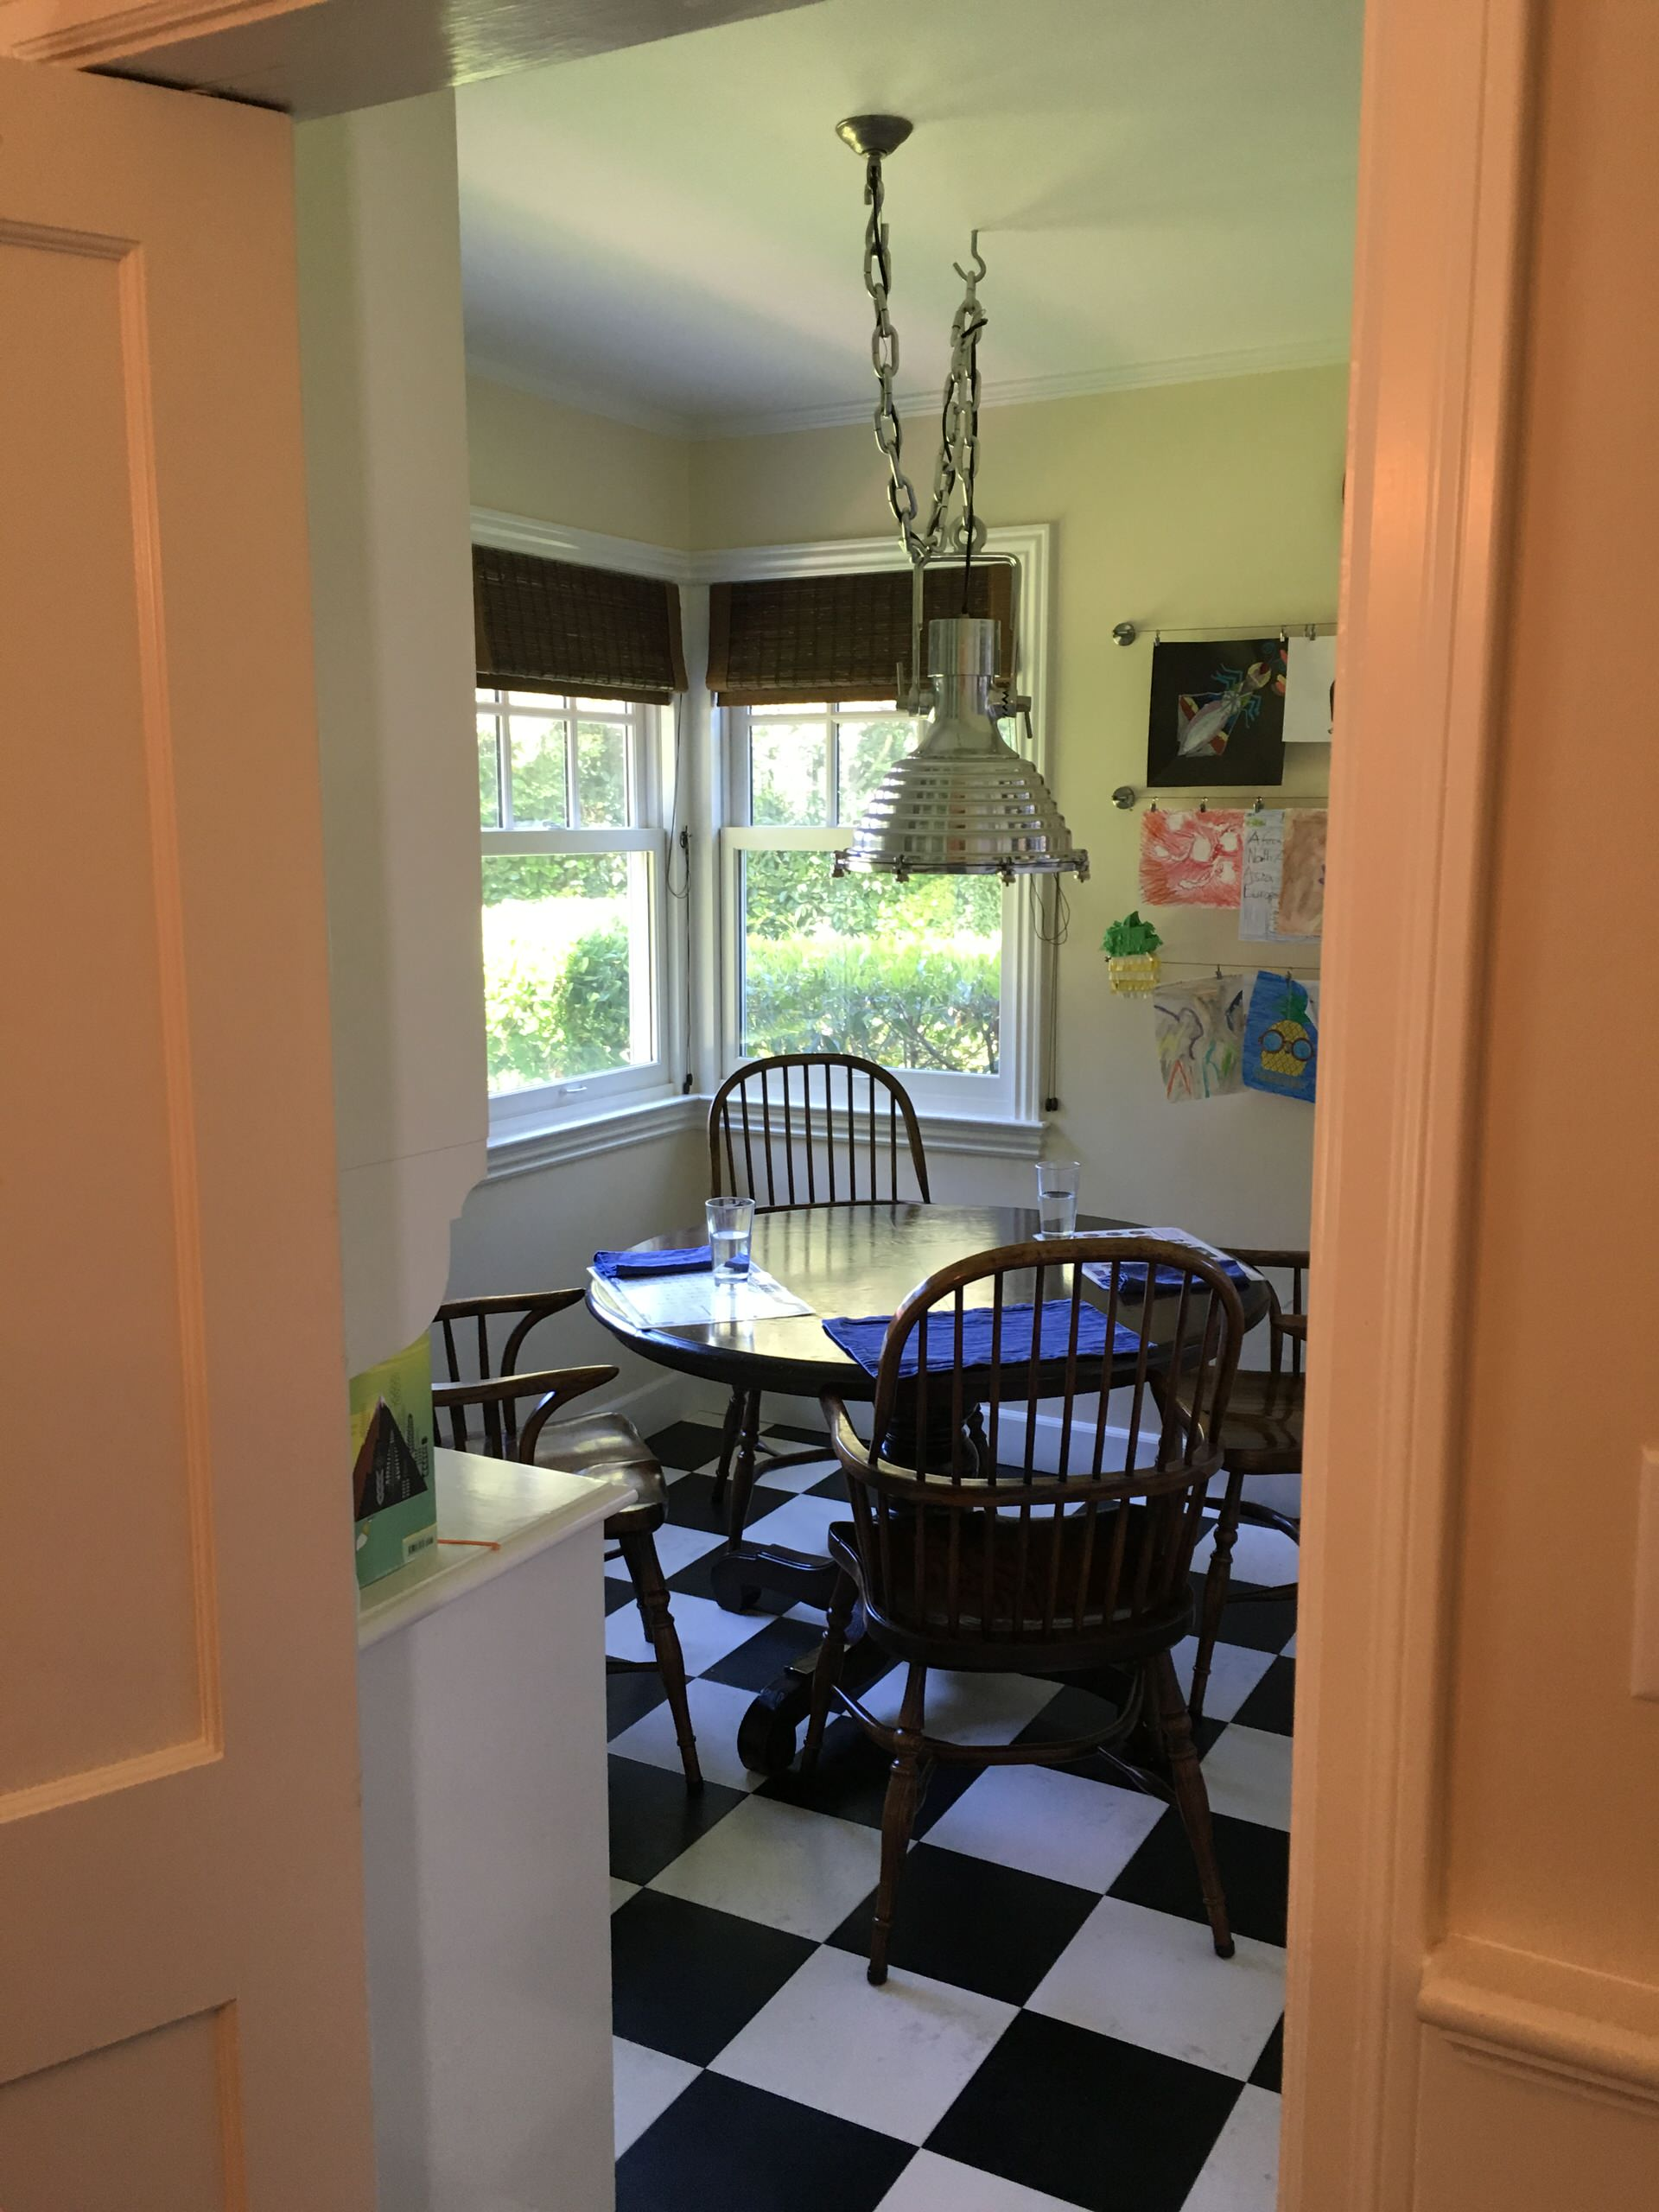 Colonial Revival - Before, office